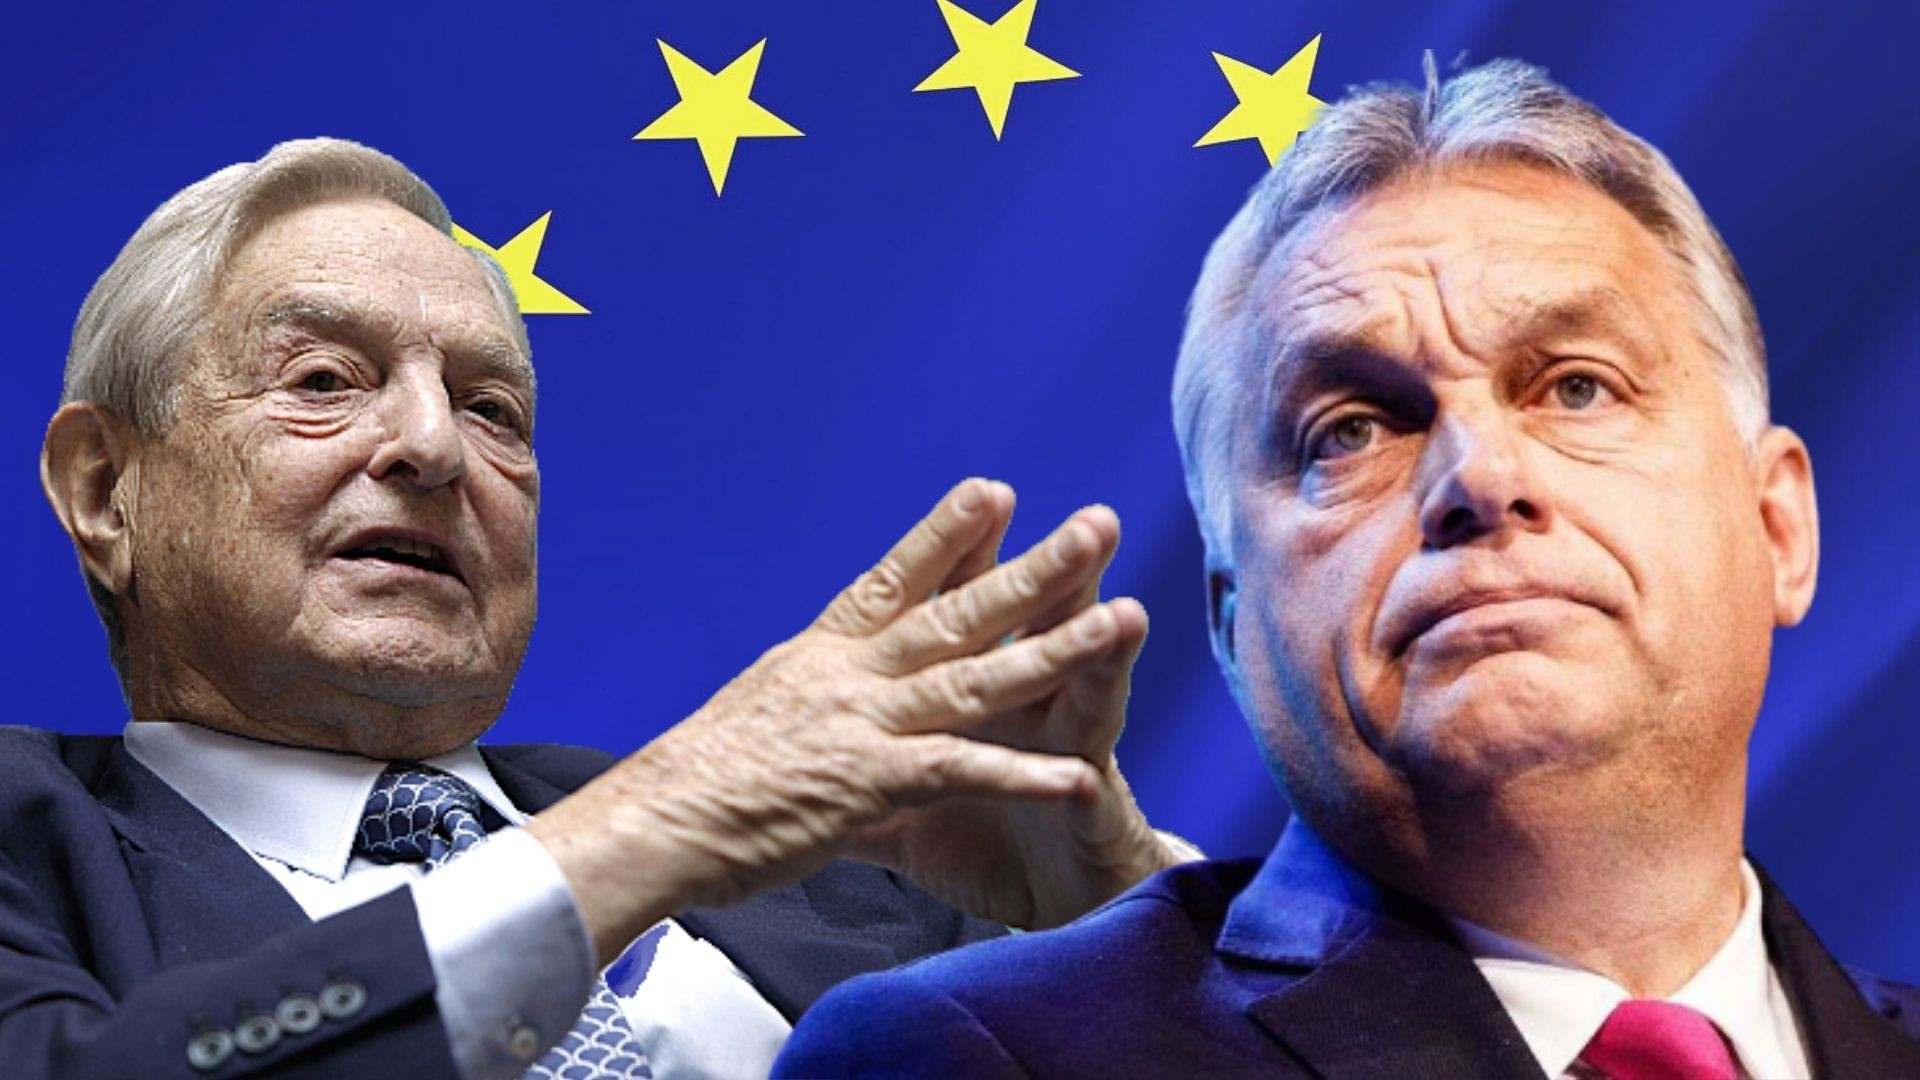 Hungary's PM Orbán: George Soros wants to create mixed-ethnic societies, dismantle nationalism, and hand power to the global elite